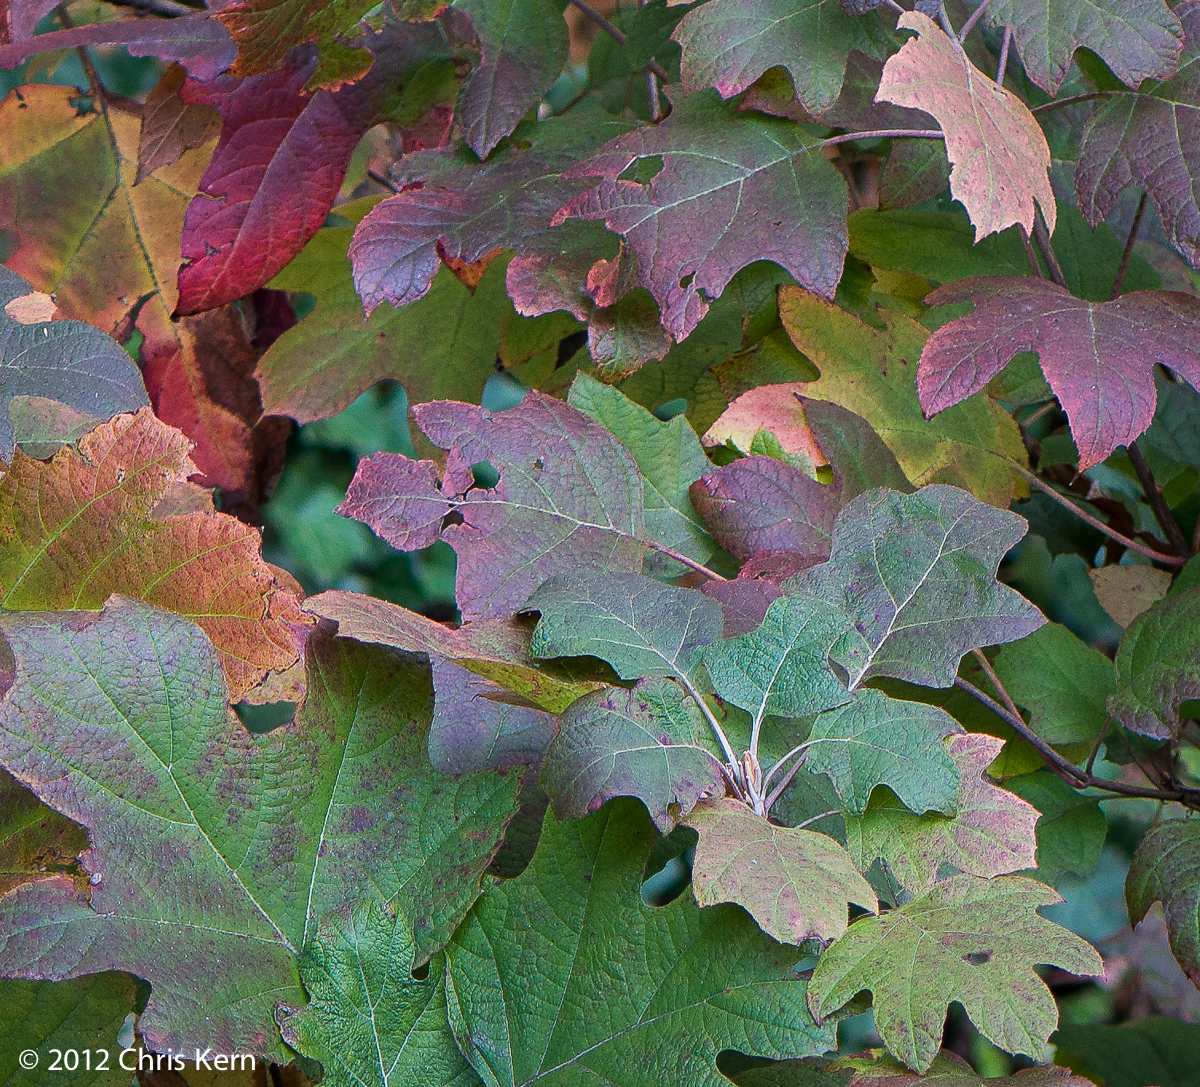 Hydrangea Leaves, Washington, District of Columbia, USA (2012)